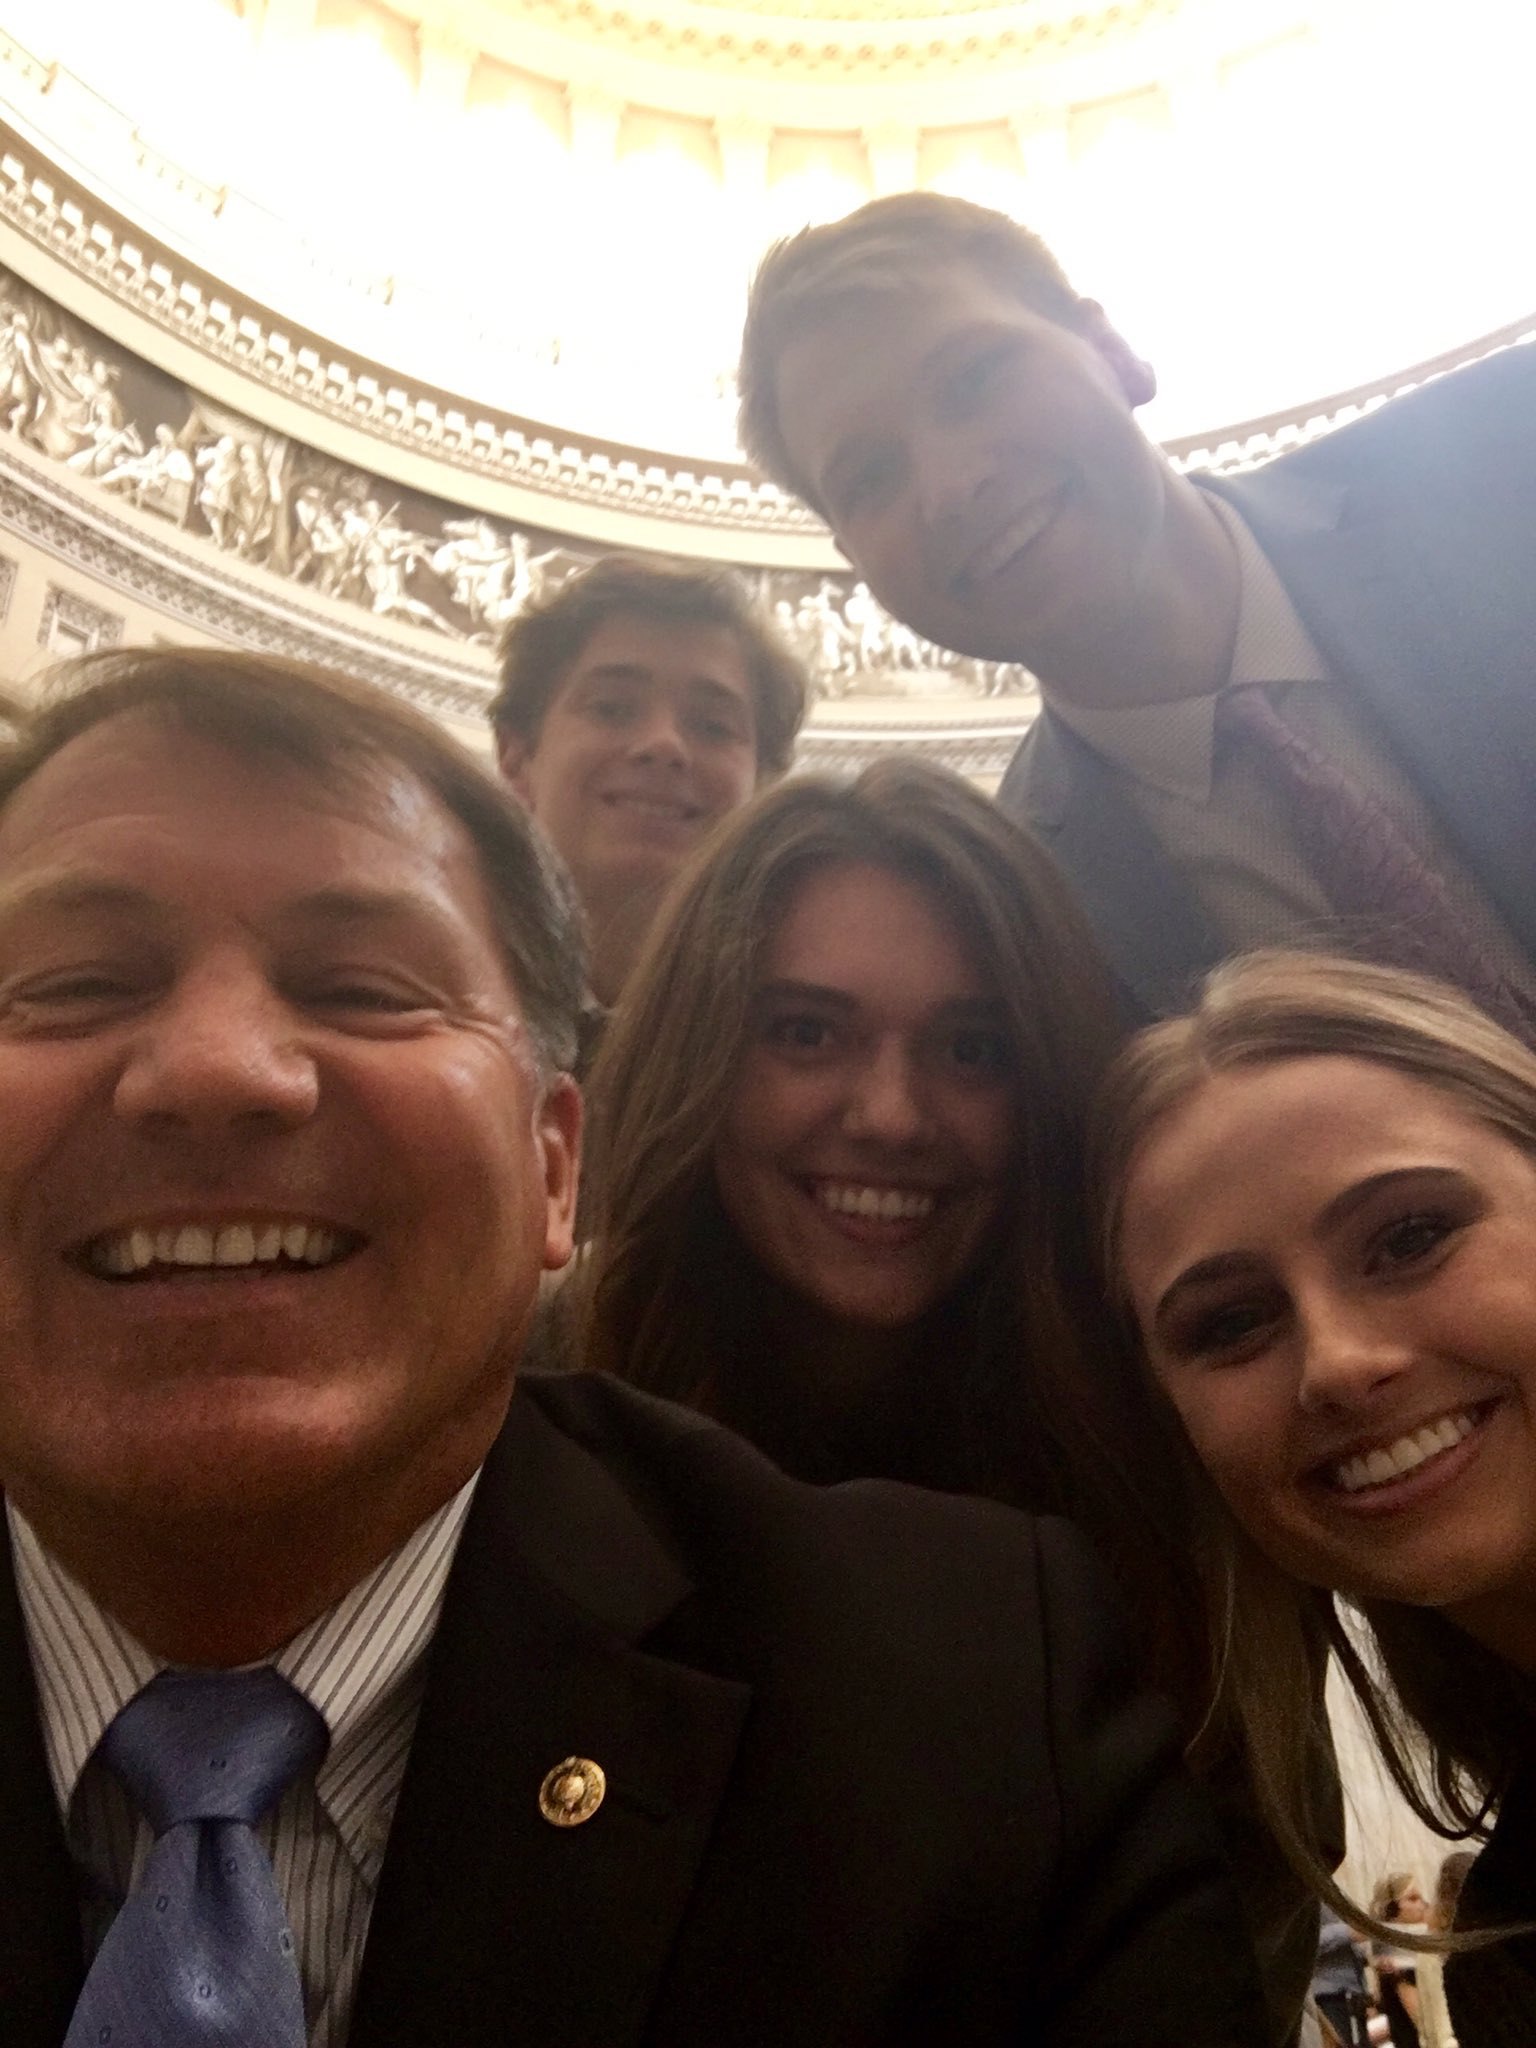 Selfie in the Capitol Rotunda w/ our awesome summer interns for #NationalSelfieDay! https://t.co/008Jgr71My